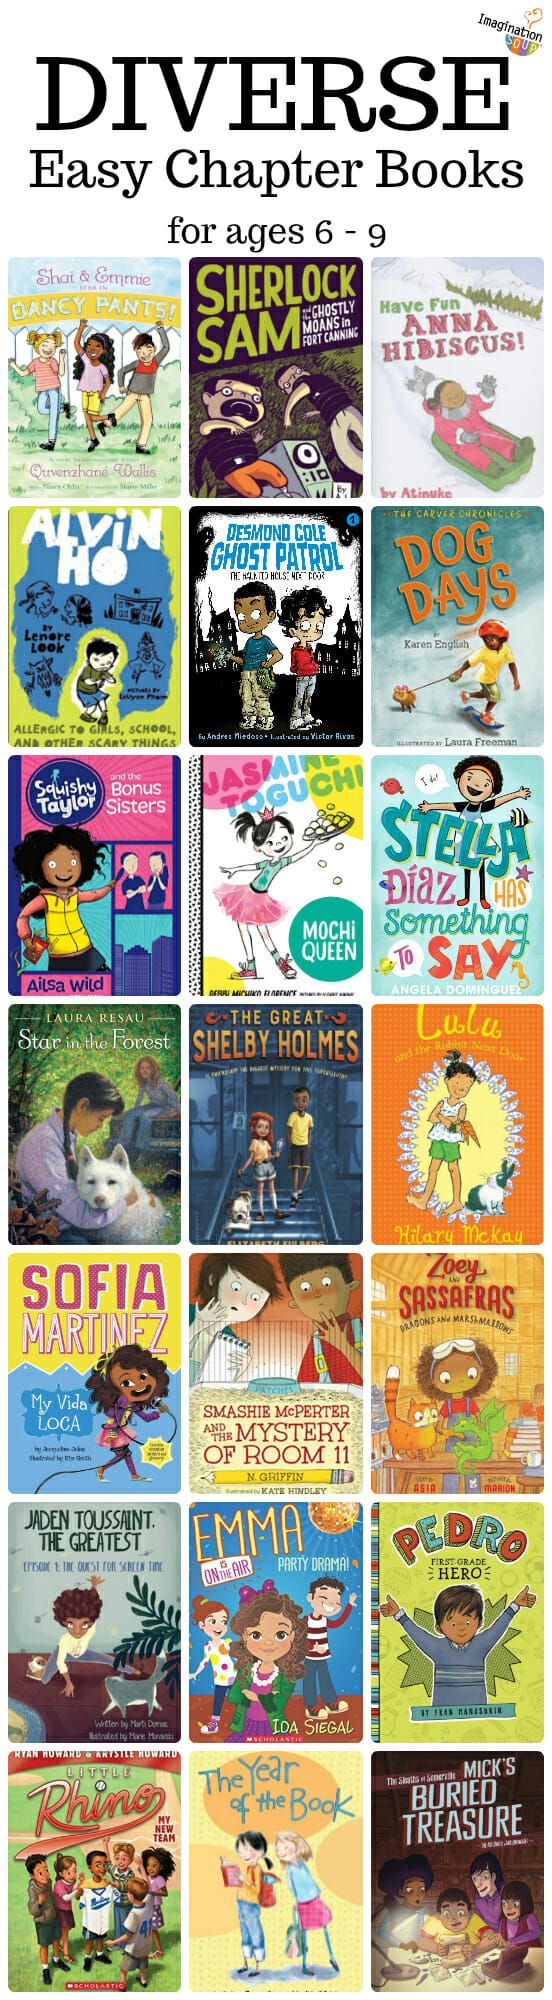 Diverse Beginning / Easy Chapter Books for Kids Ages 6 - 9